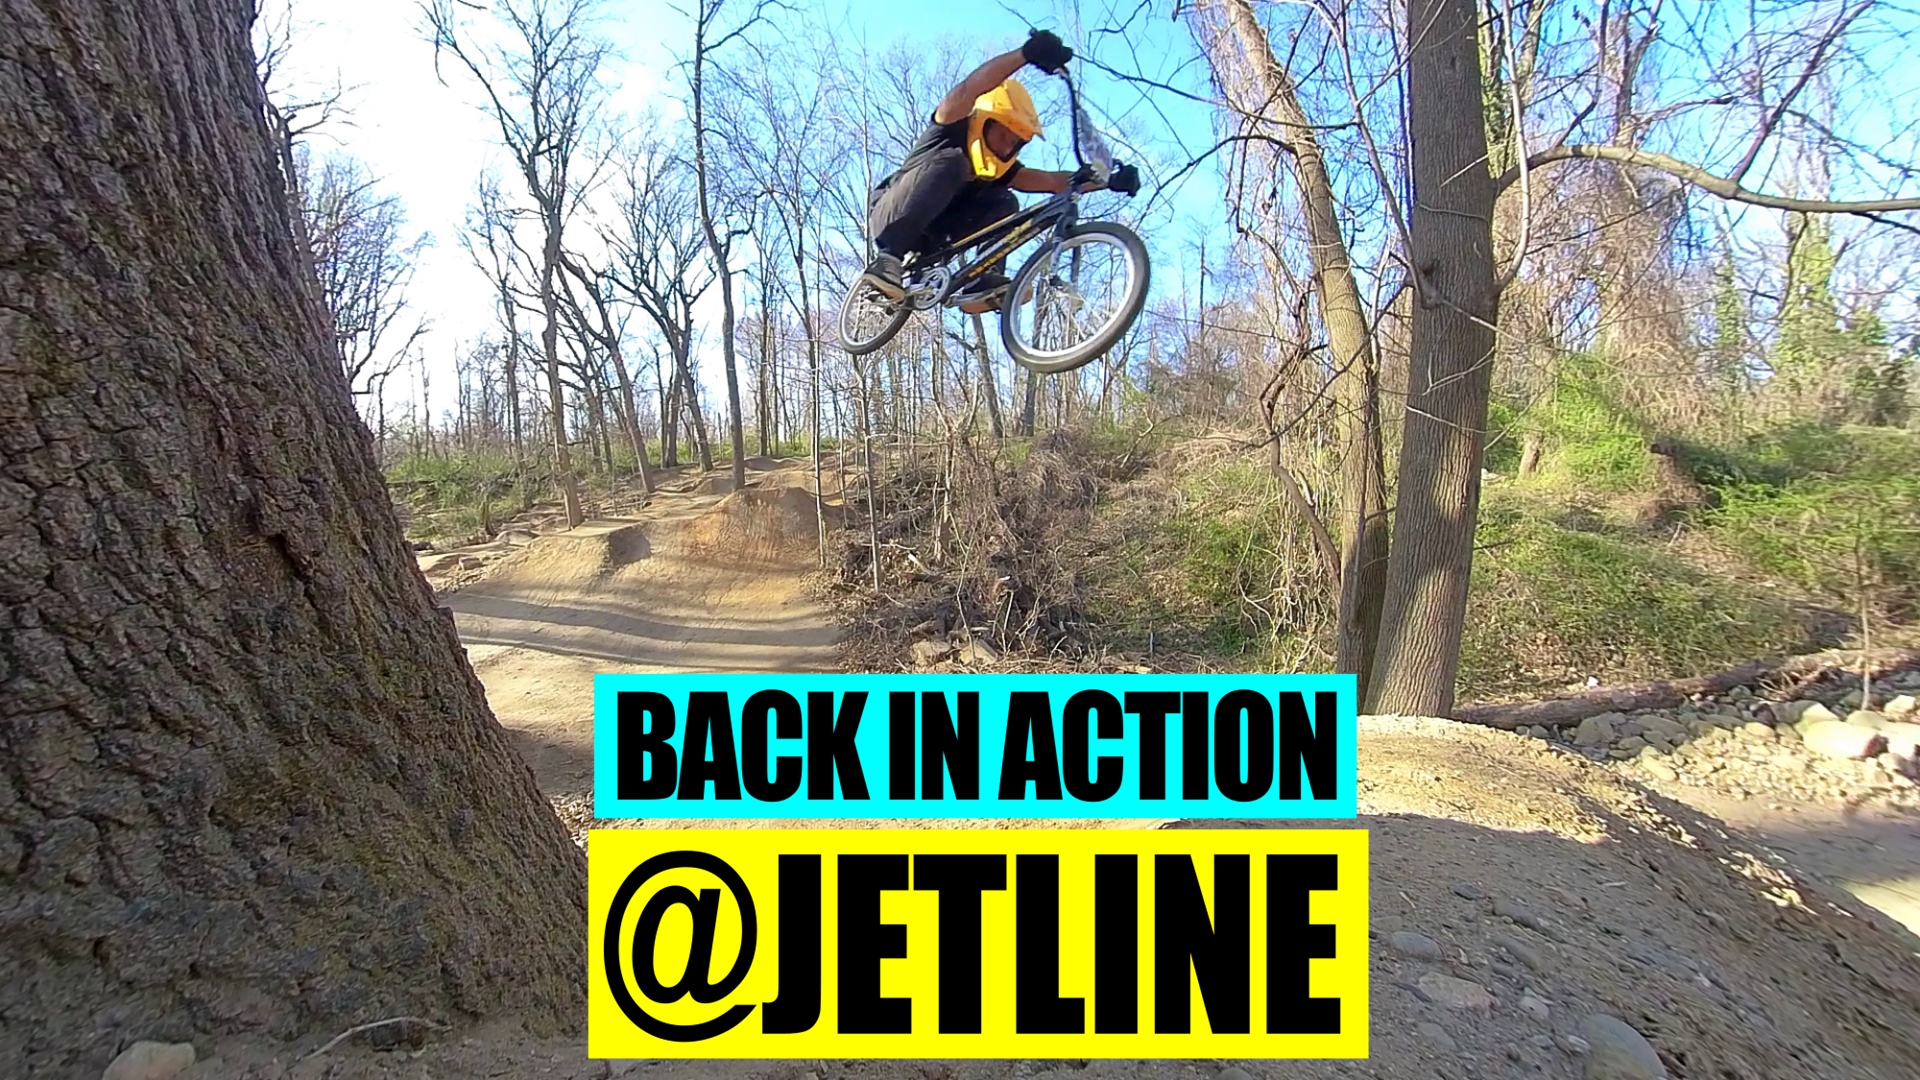 jetline jumping action